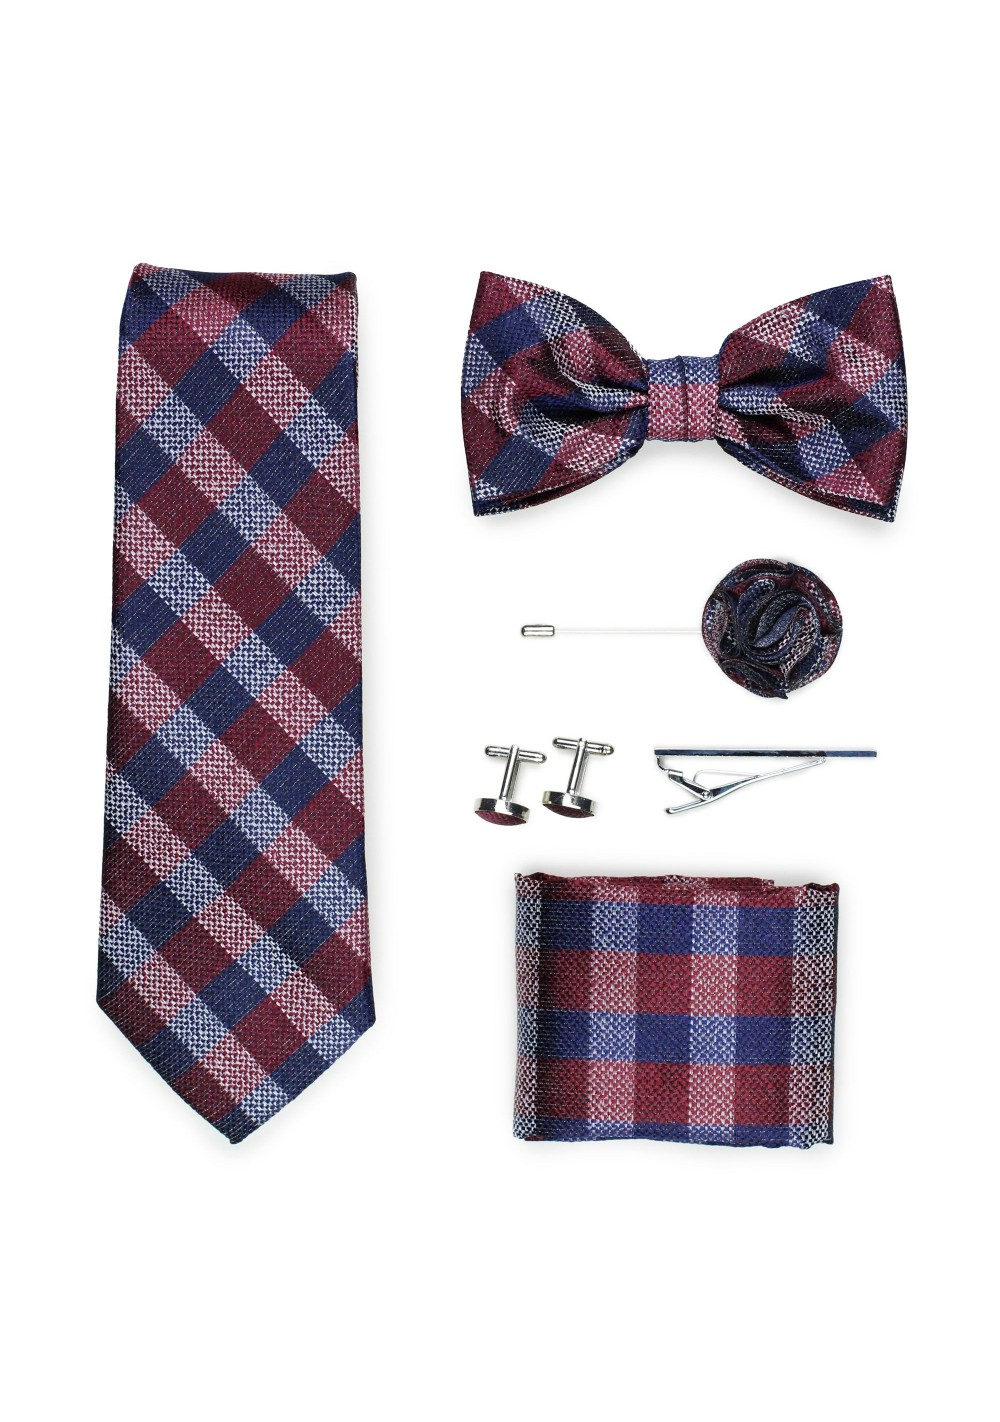 gingham check necktie gift set in navy and burgundy